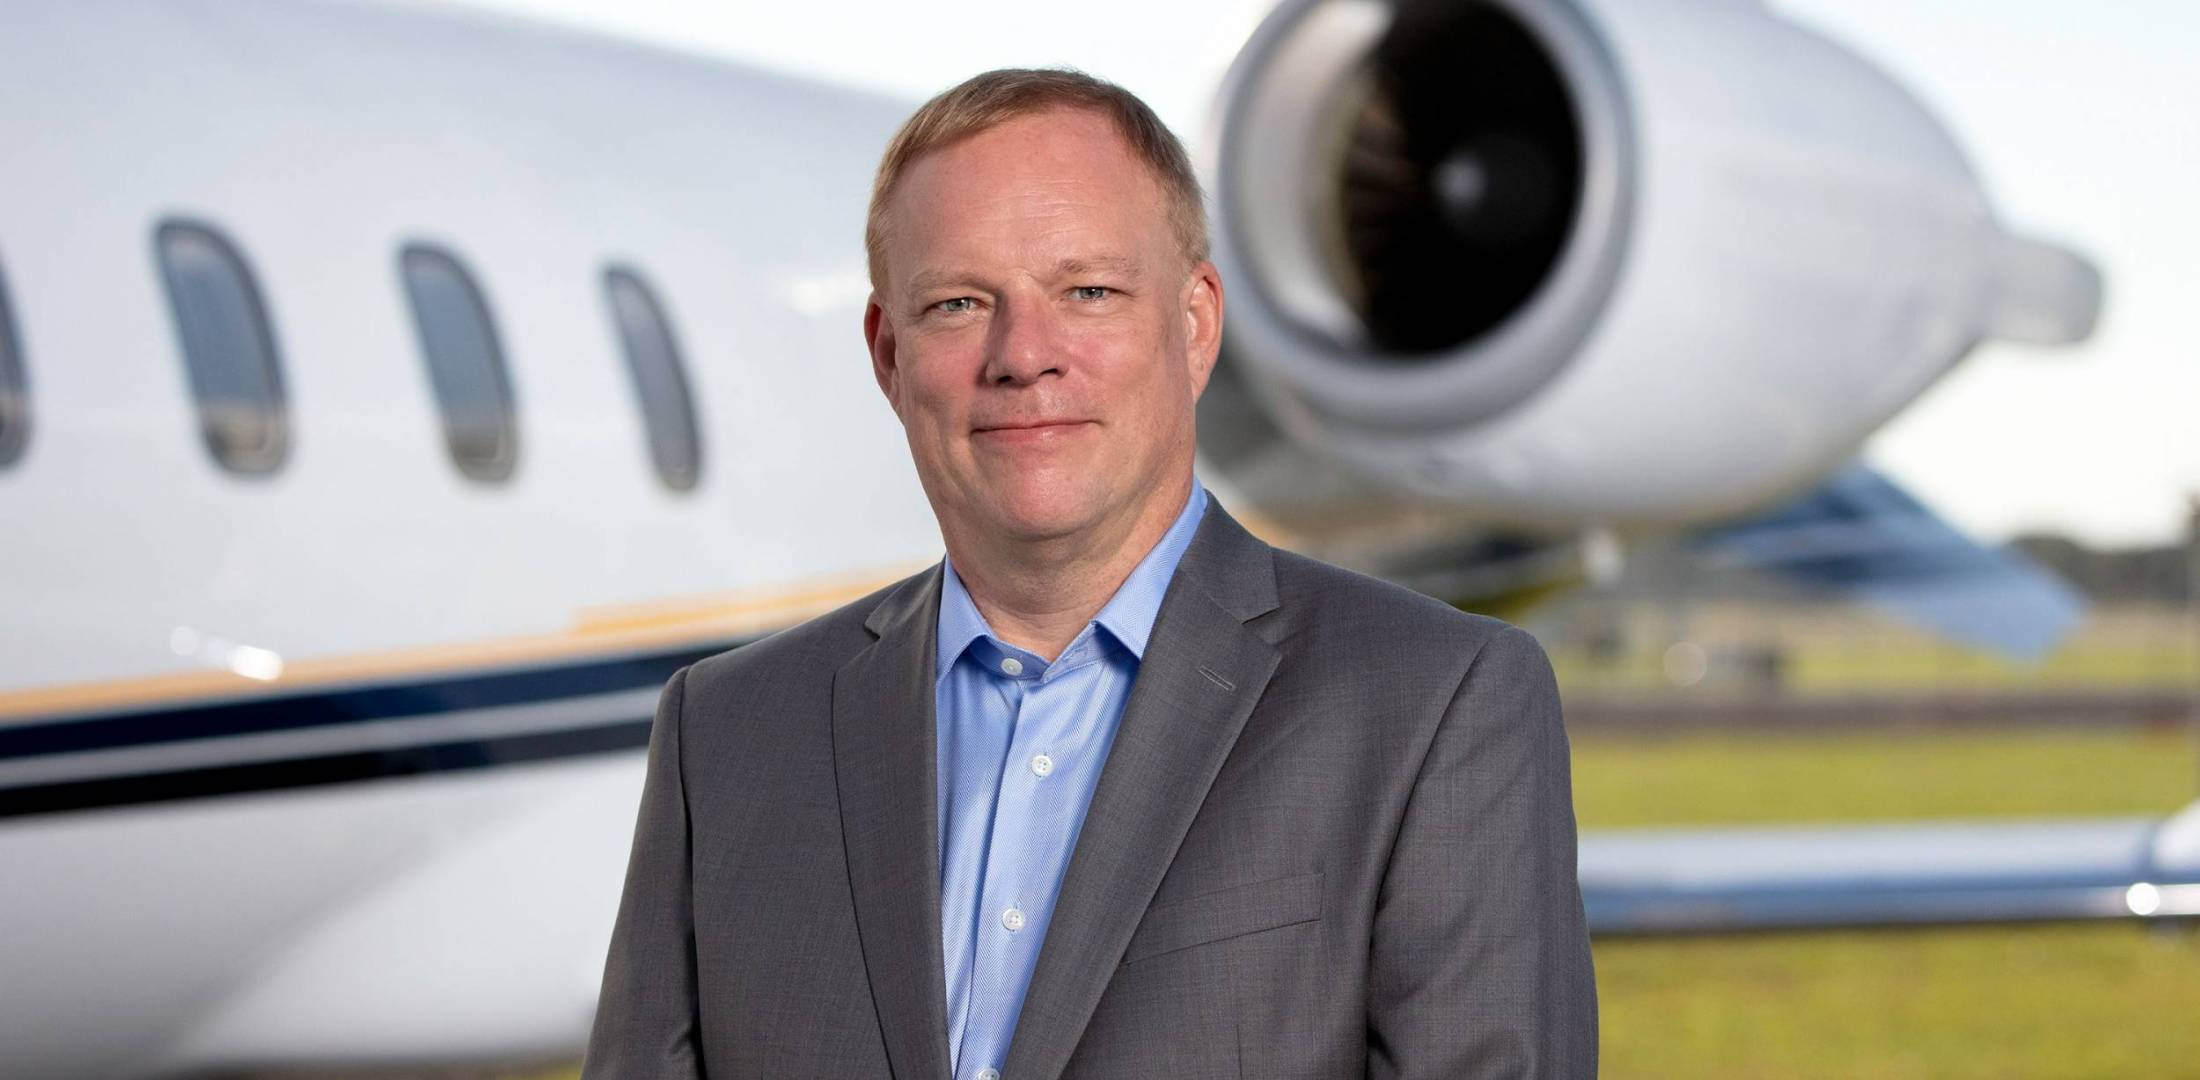 Simon Davies, vice President, sales, UK, Middle East and India, Global Jet Capital